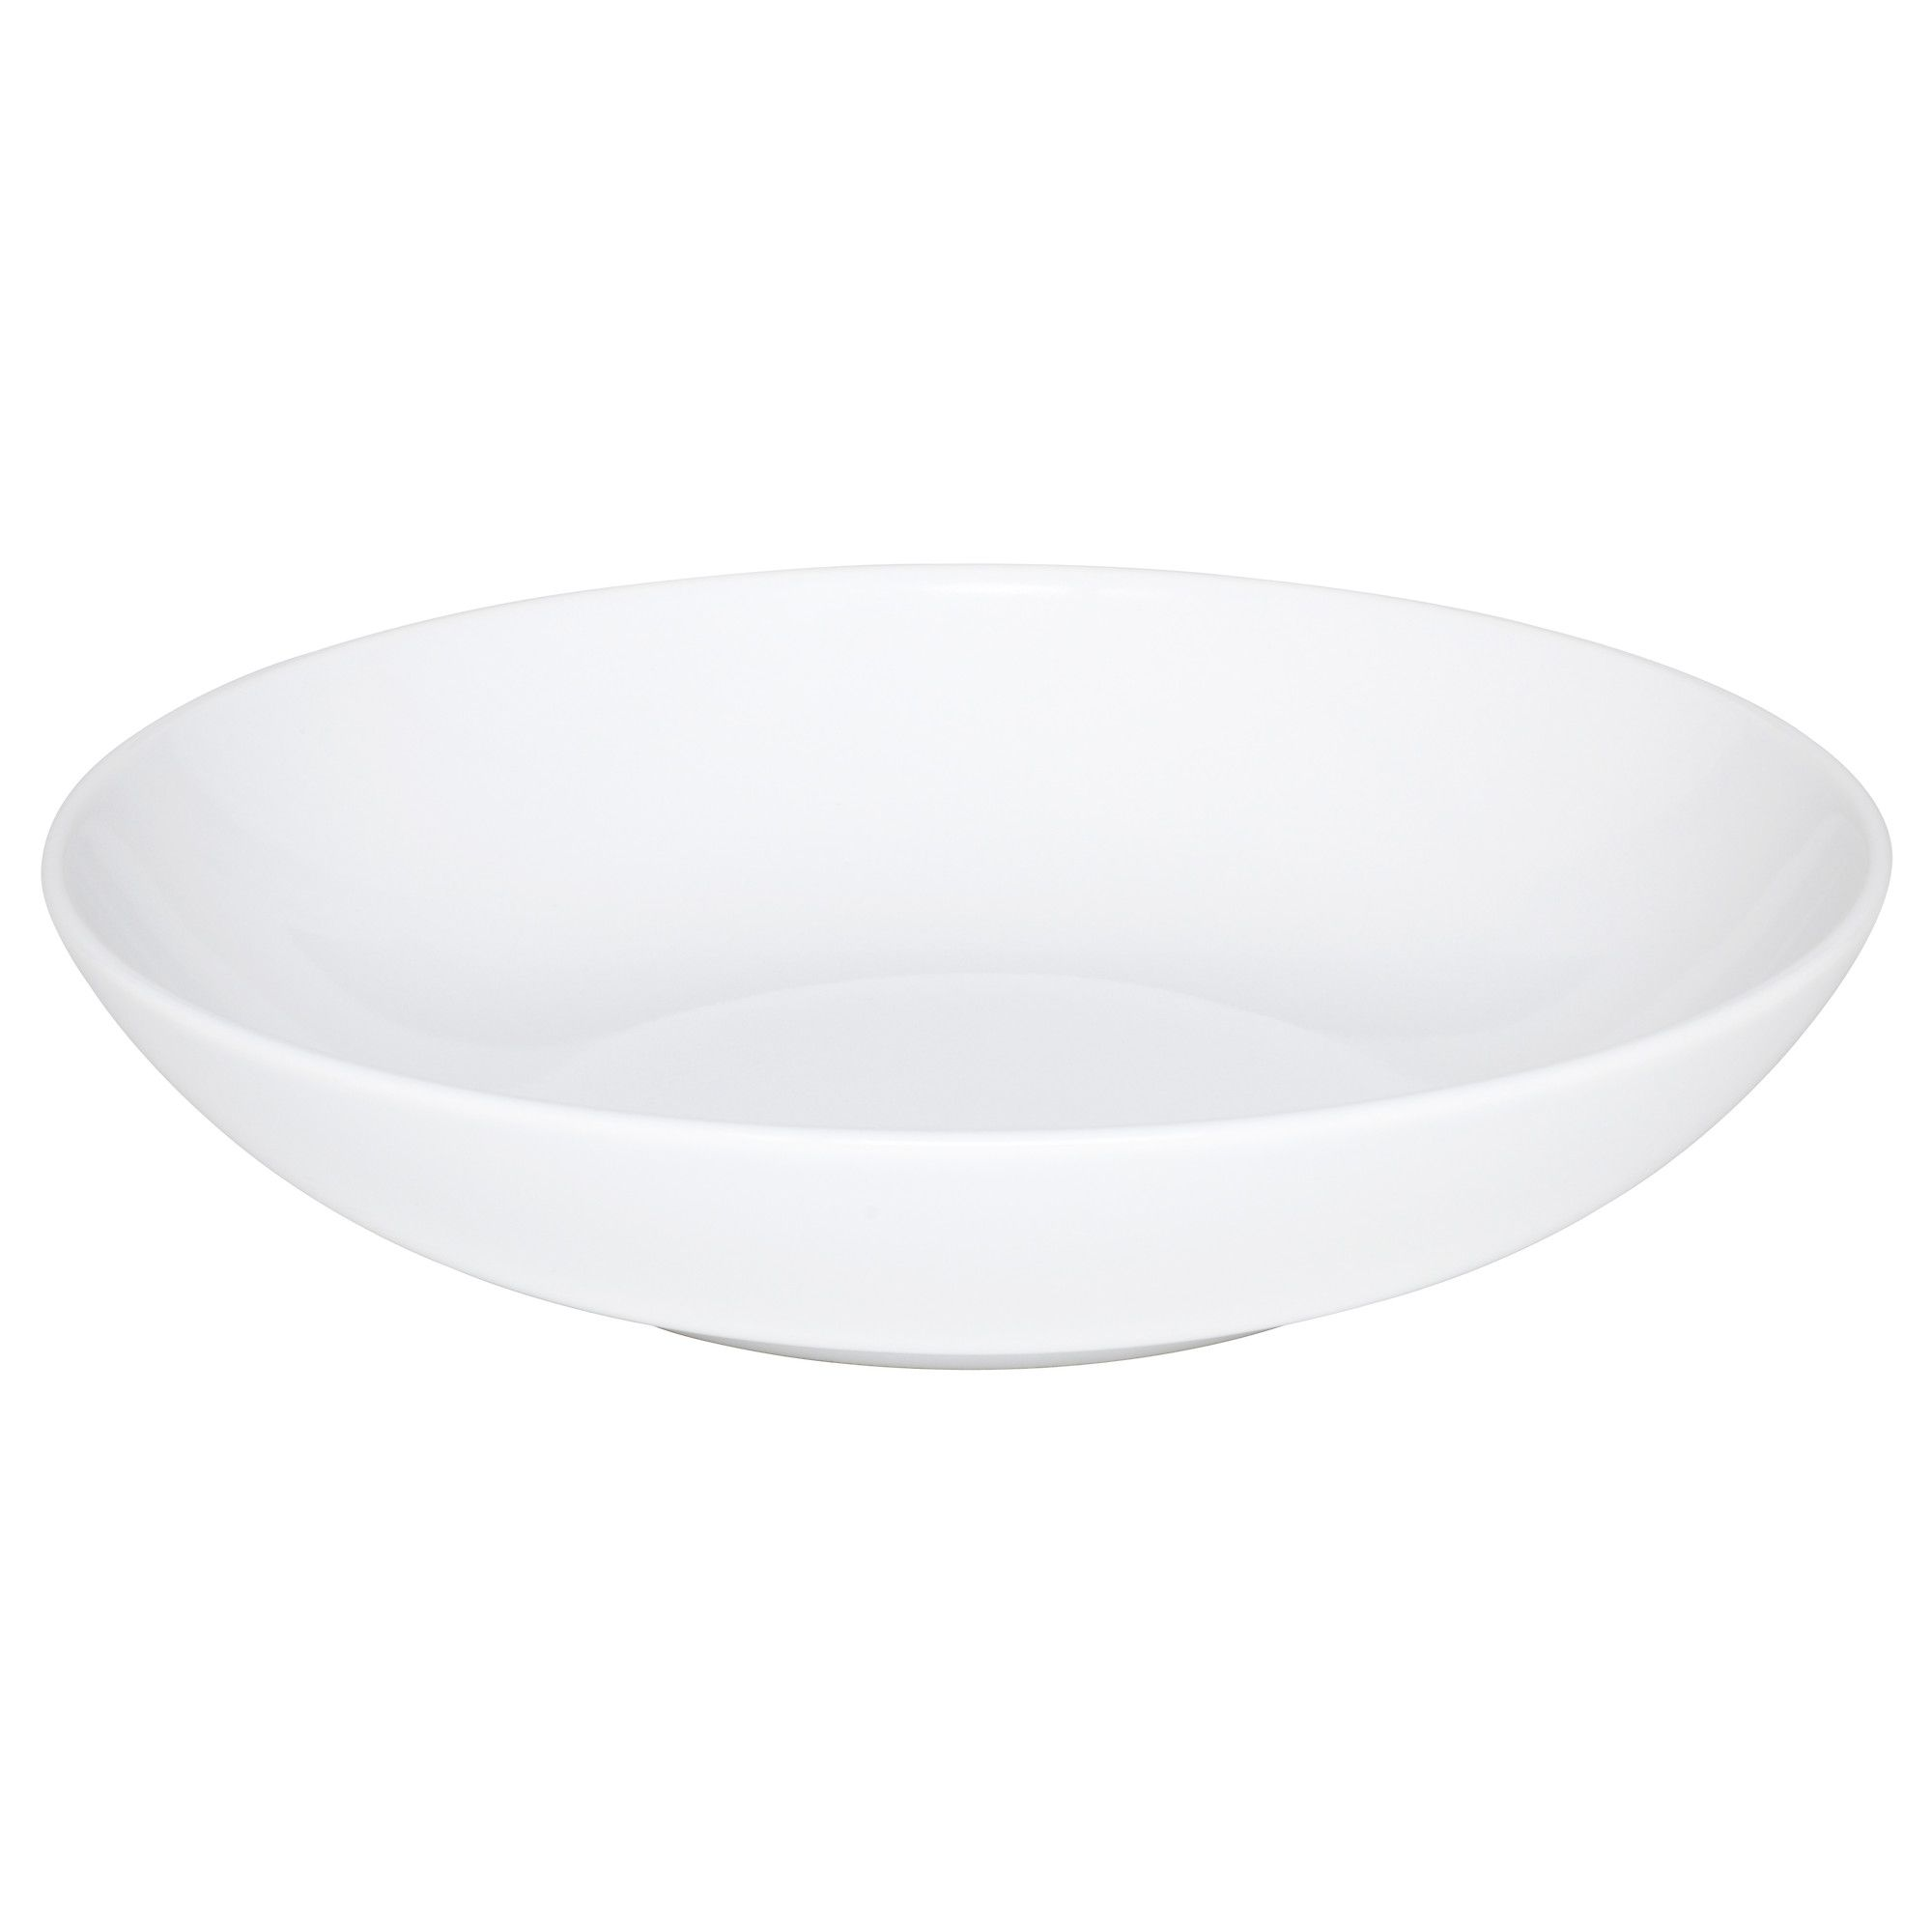 f rgrik bowl white stoneware ikea replace plates with large deep bowls 6 kitchen tools. Black Bedroom Furniture Sets. Home Design Ideas